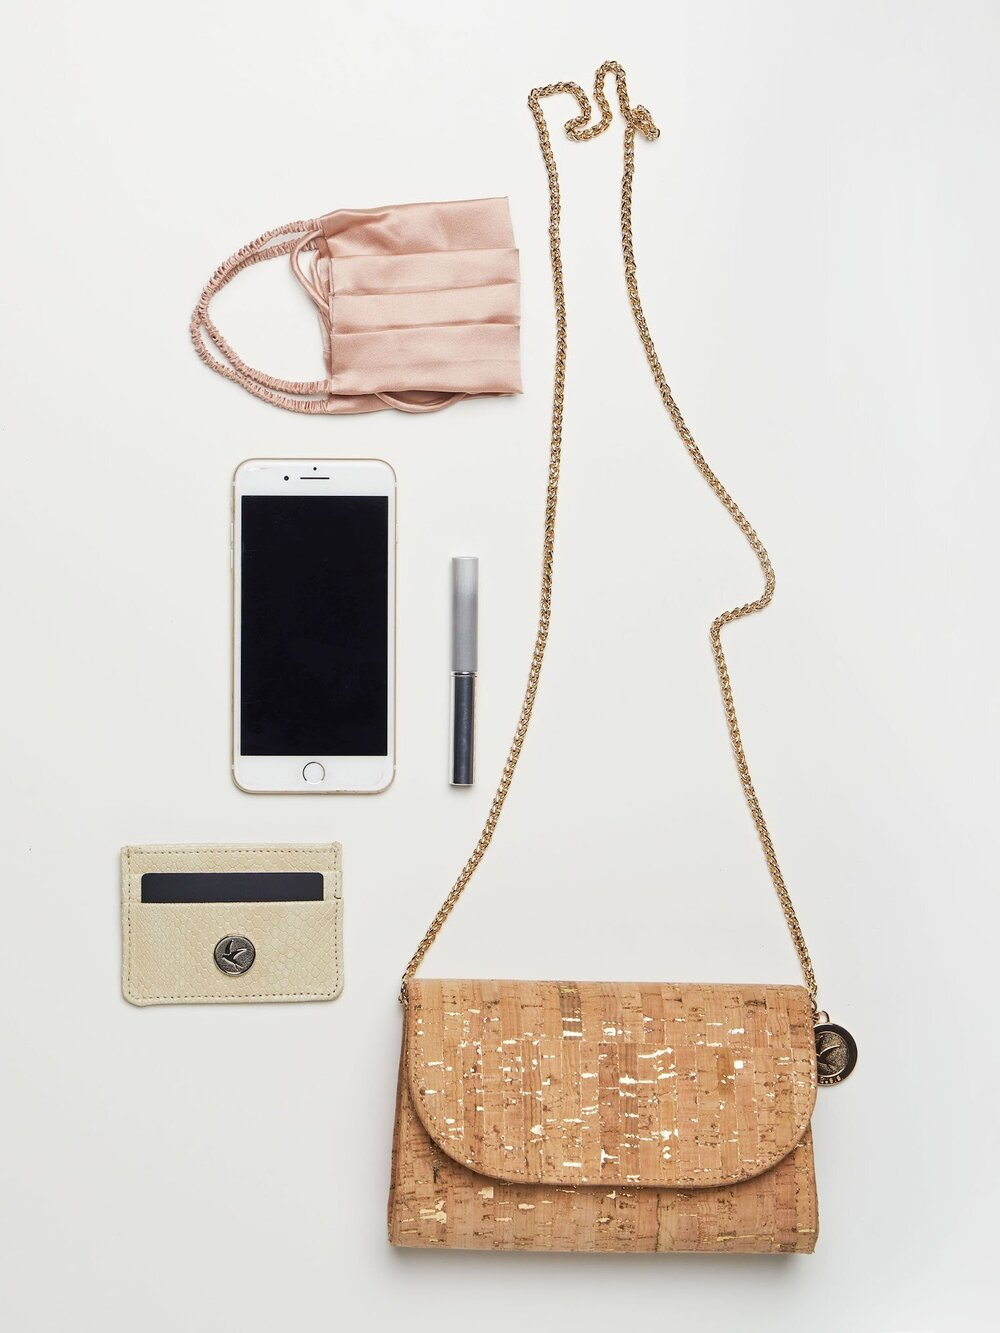 Sustainably Chic   Sustainable Fashion Blog   What is Cork?   Sustainable Cork Brands & Products   Cork Handbag by Svala.jpg